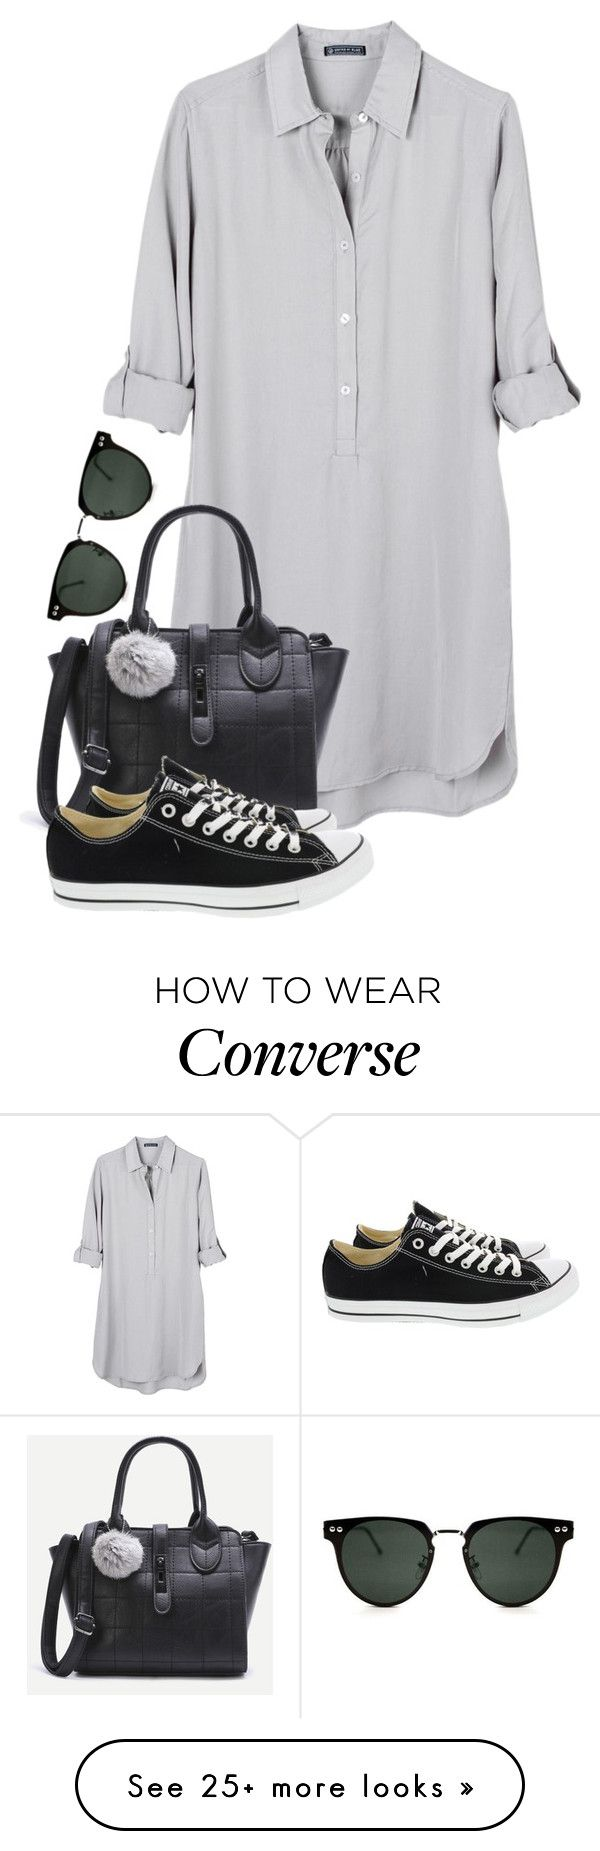 """~433\\433~"" by taytay-55 on Polyvore featuring United by Blue, Converse and Spitfire"